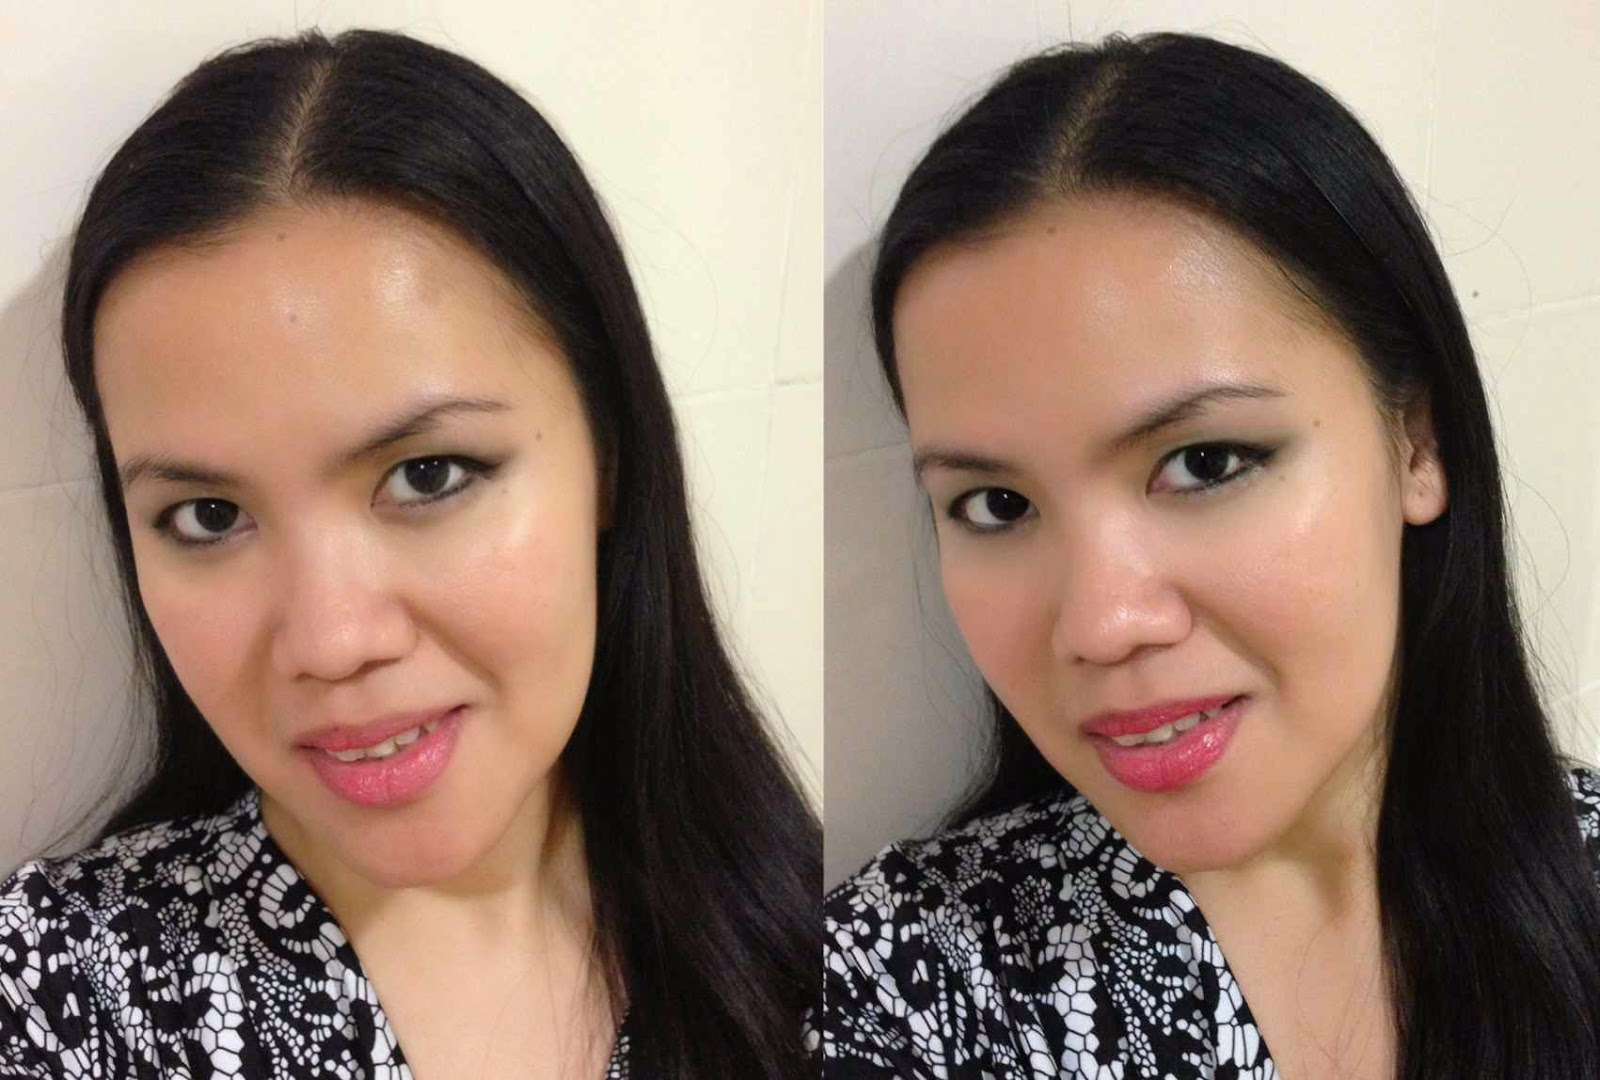 julie-hewett-bijou-collection-lipstick-before-after